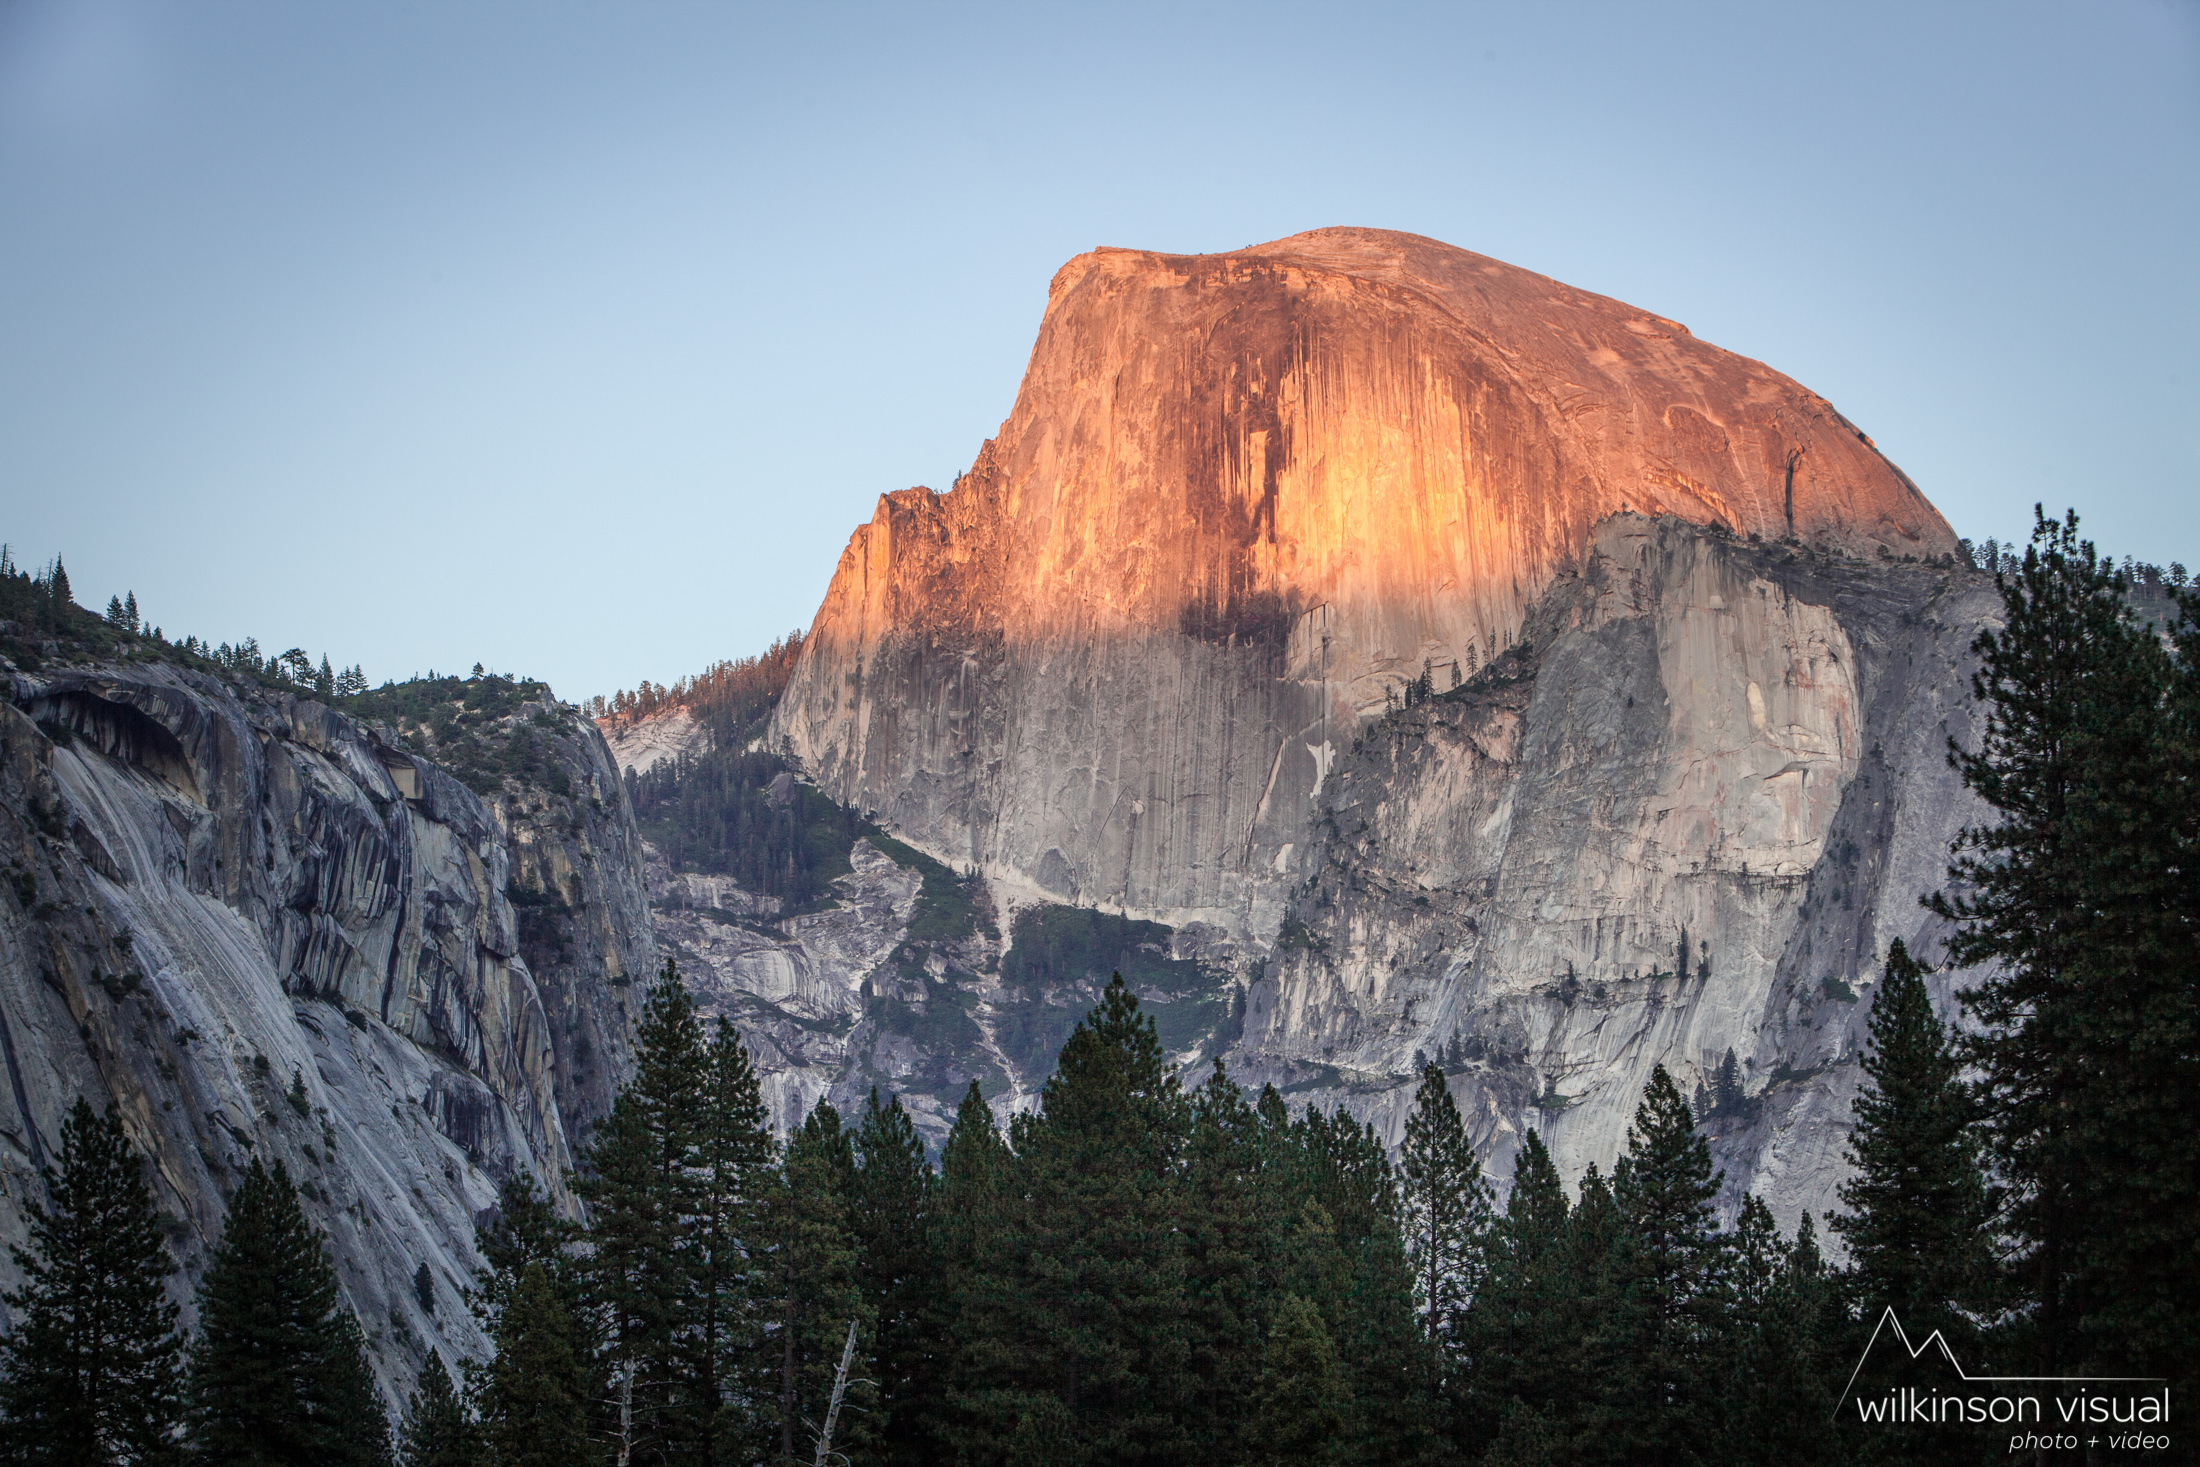 Yosemite's Half-Dome, catching the last light from sunset.